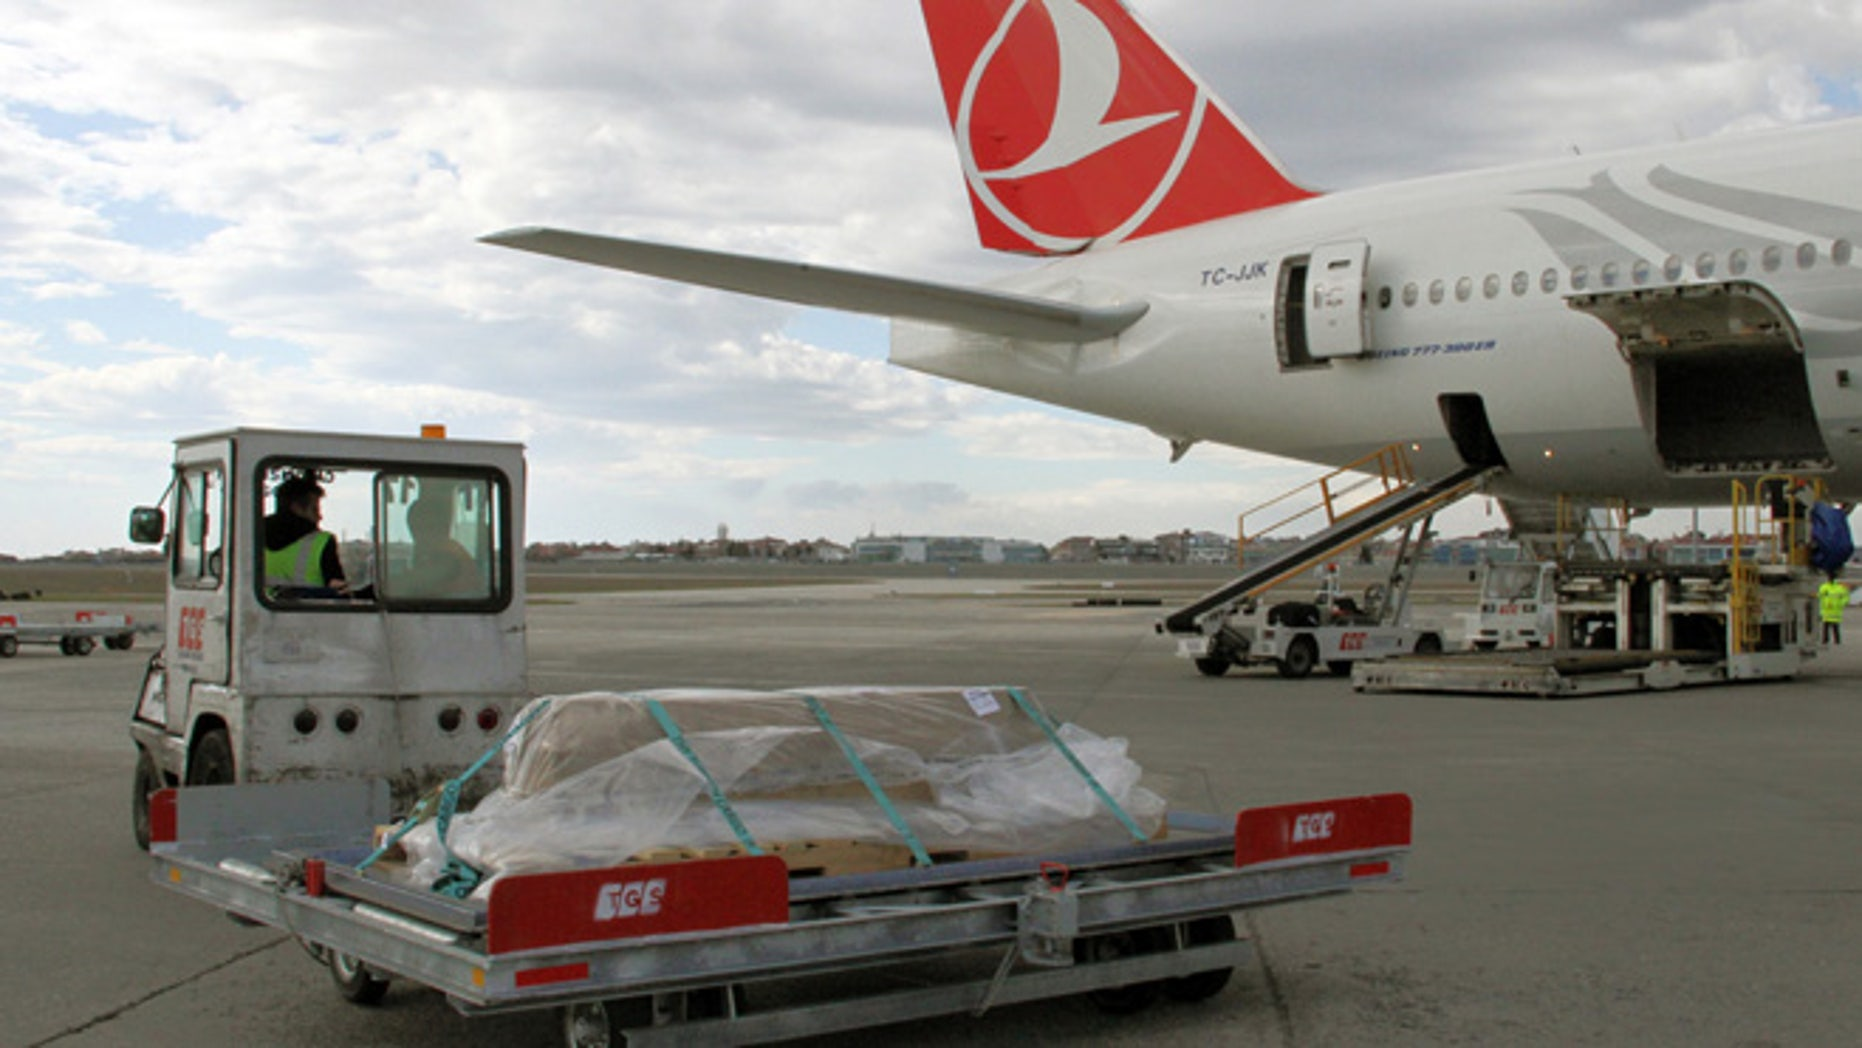 Feb. 7, 2013: Turkish airport ground service workers load a casket carrying the remains of New York City woman Sarai Sierra, 33, into a plane bound for New York at the Ataturk Airport in Istanbul, Turkey. (AP)